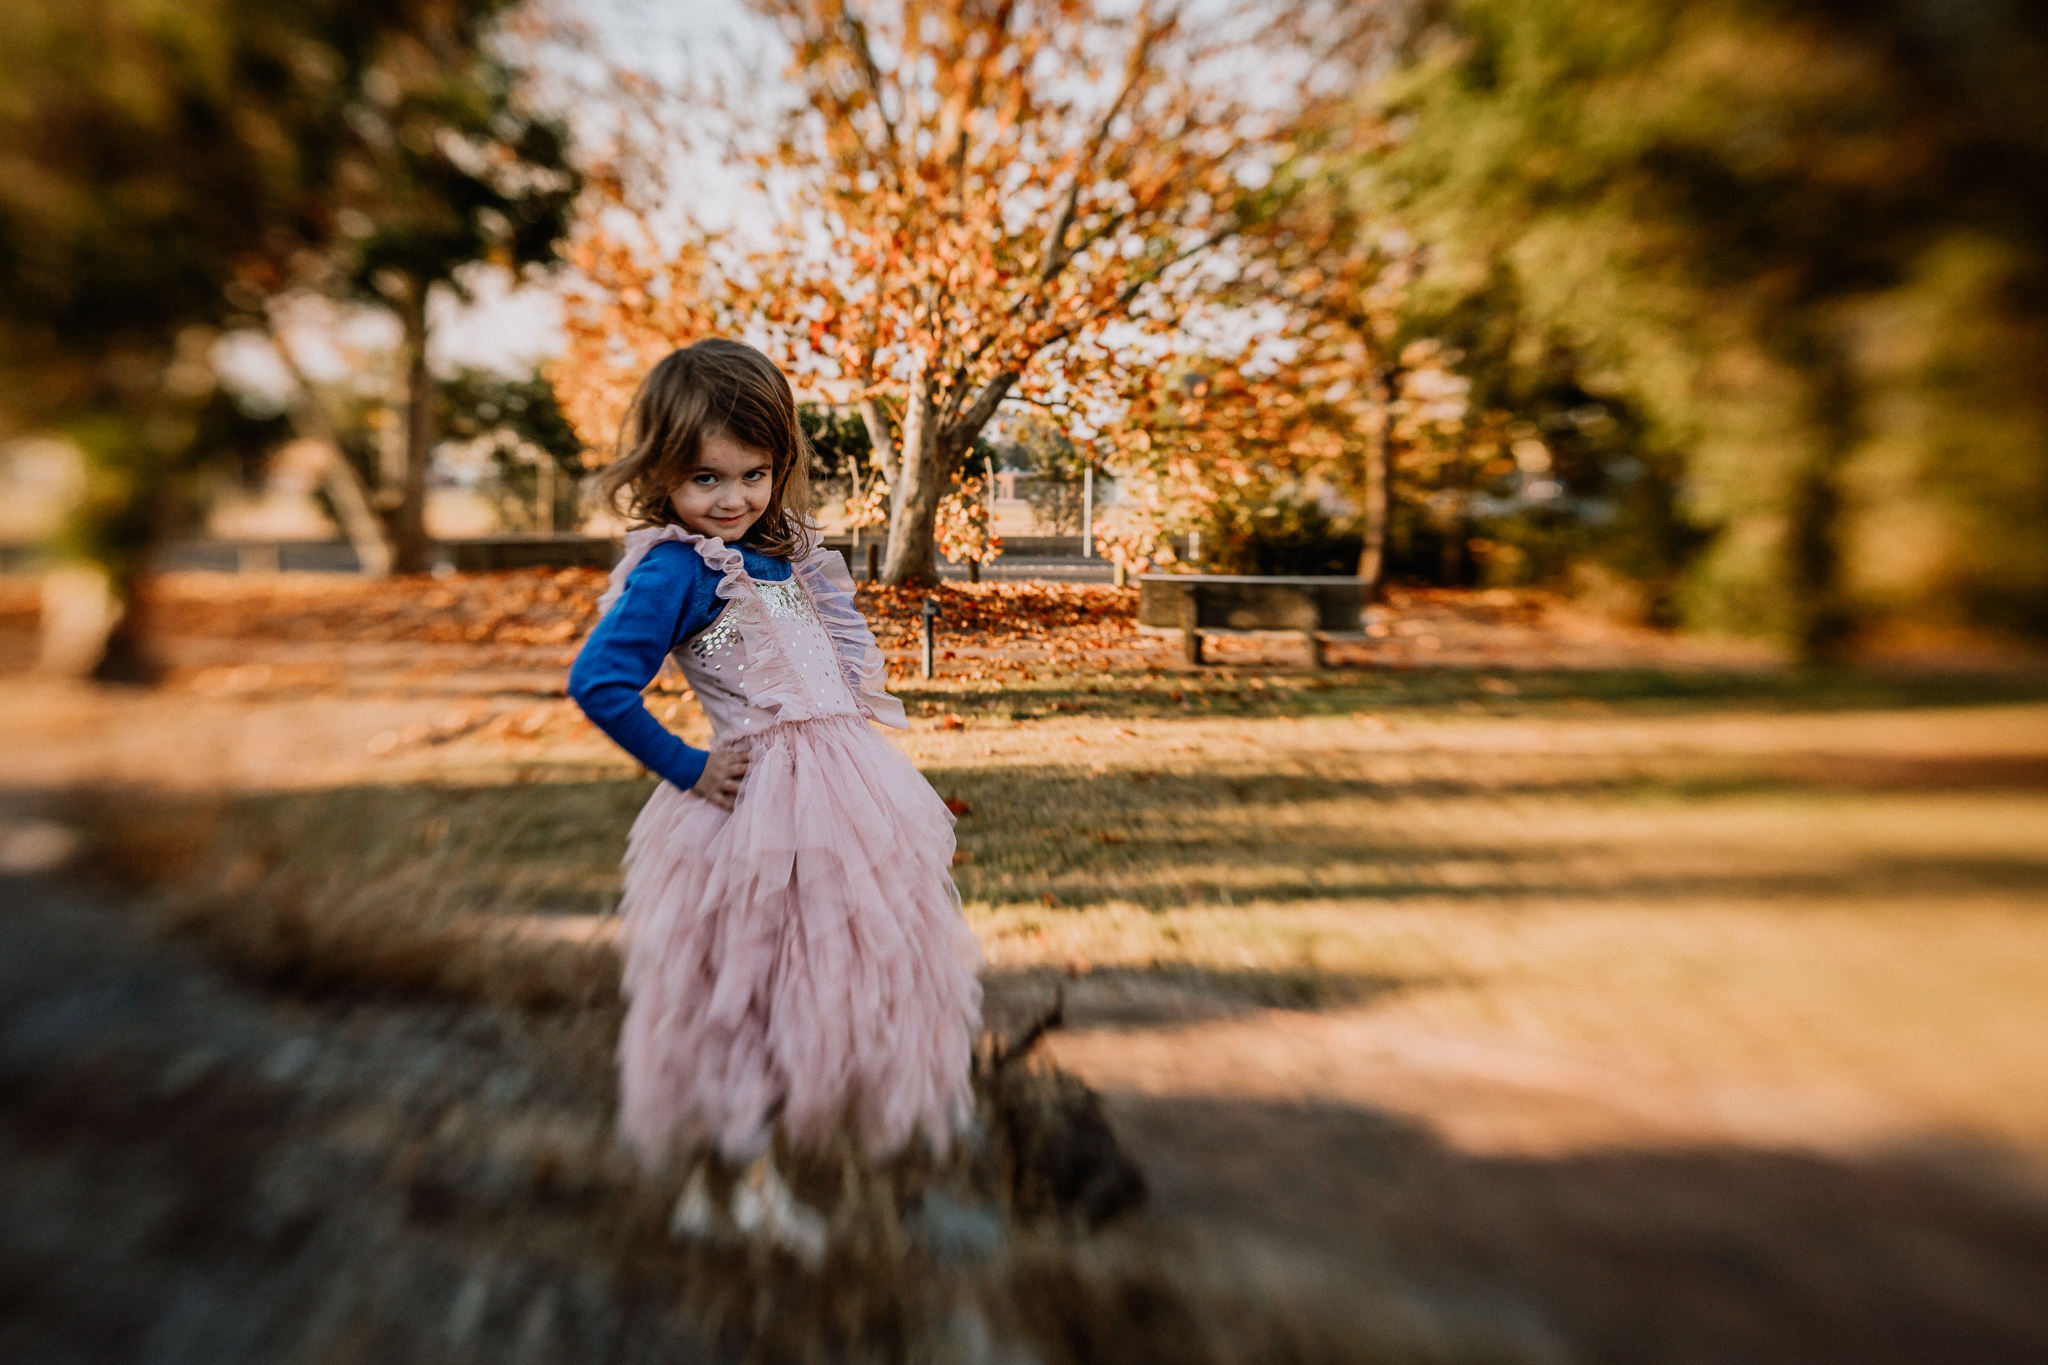 Haweksbury family lifestyle photography, kylie purtell photos and film-4.jpg